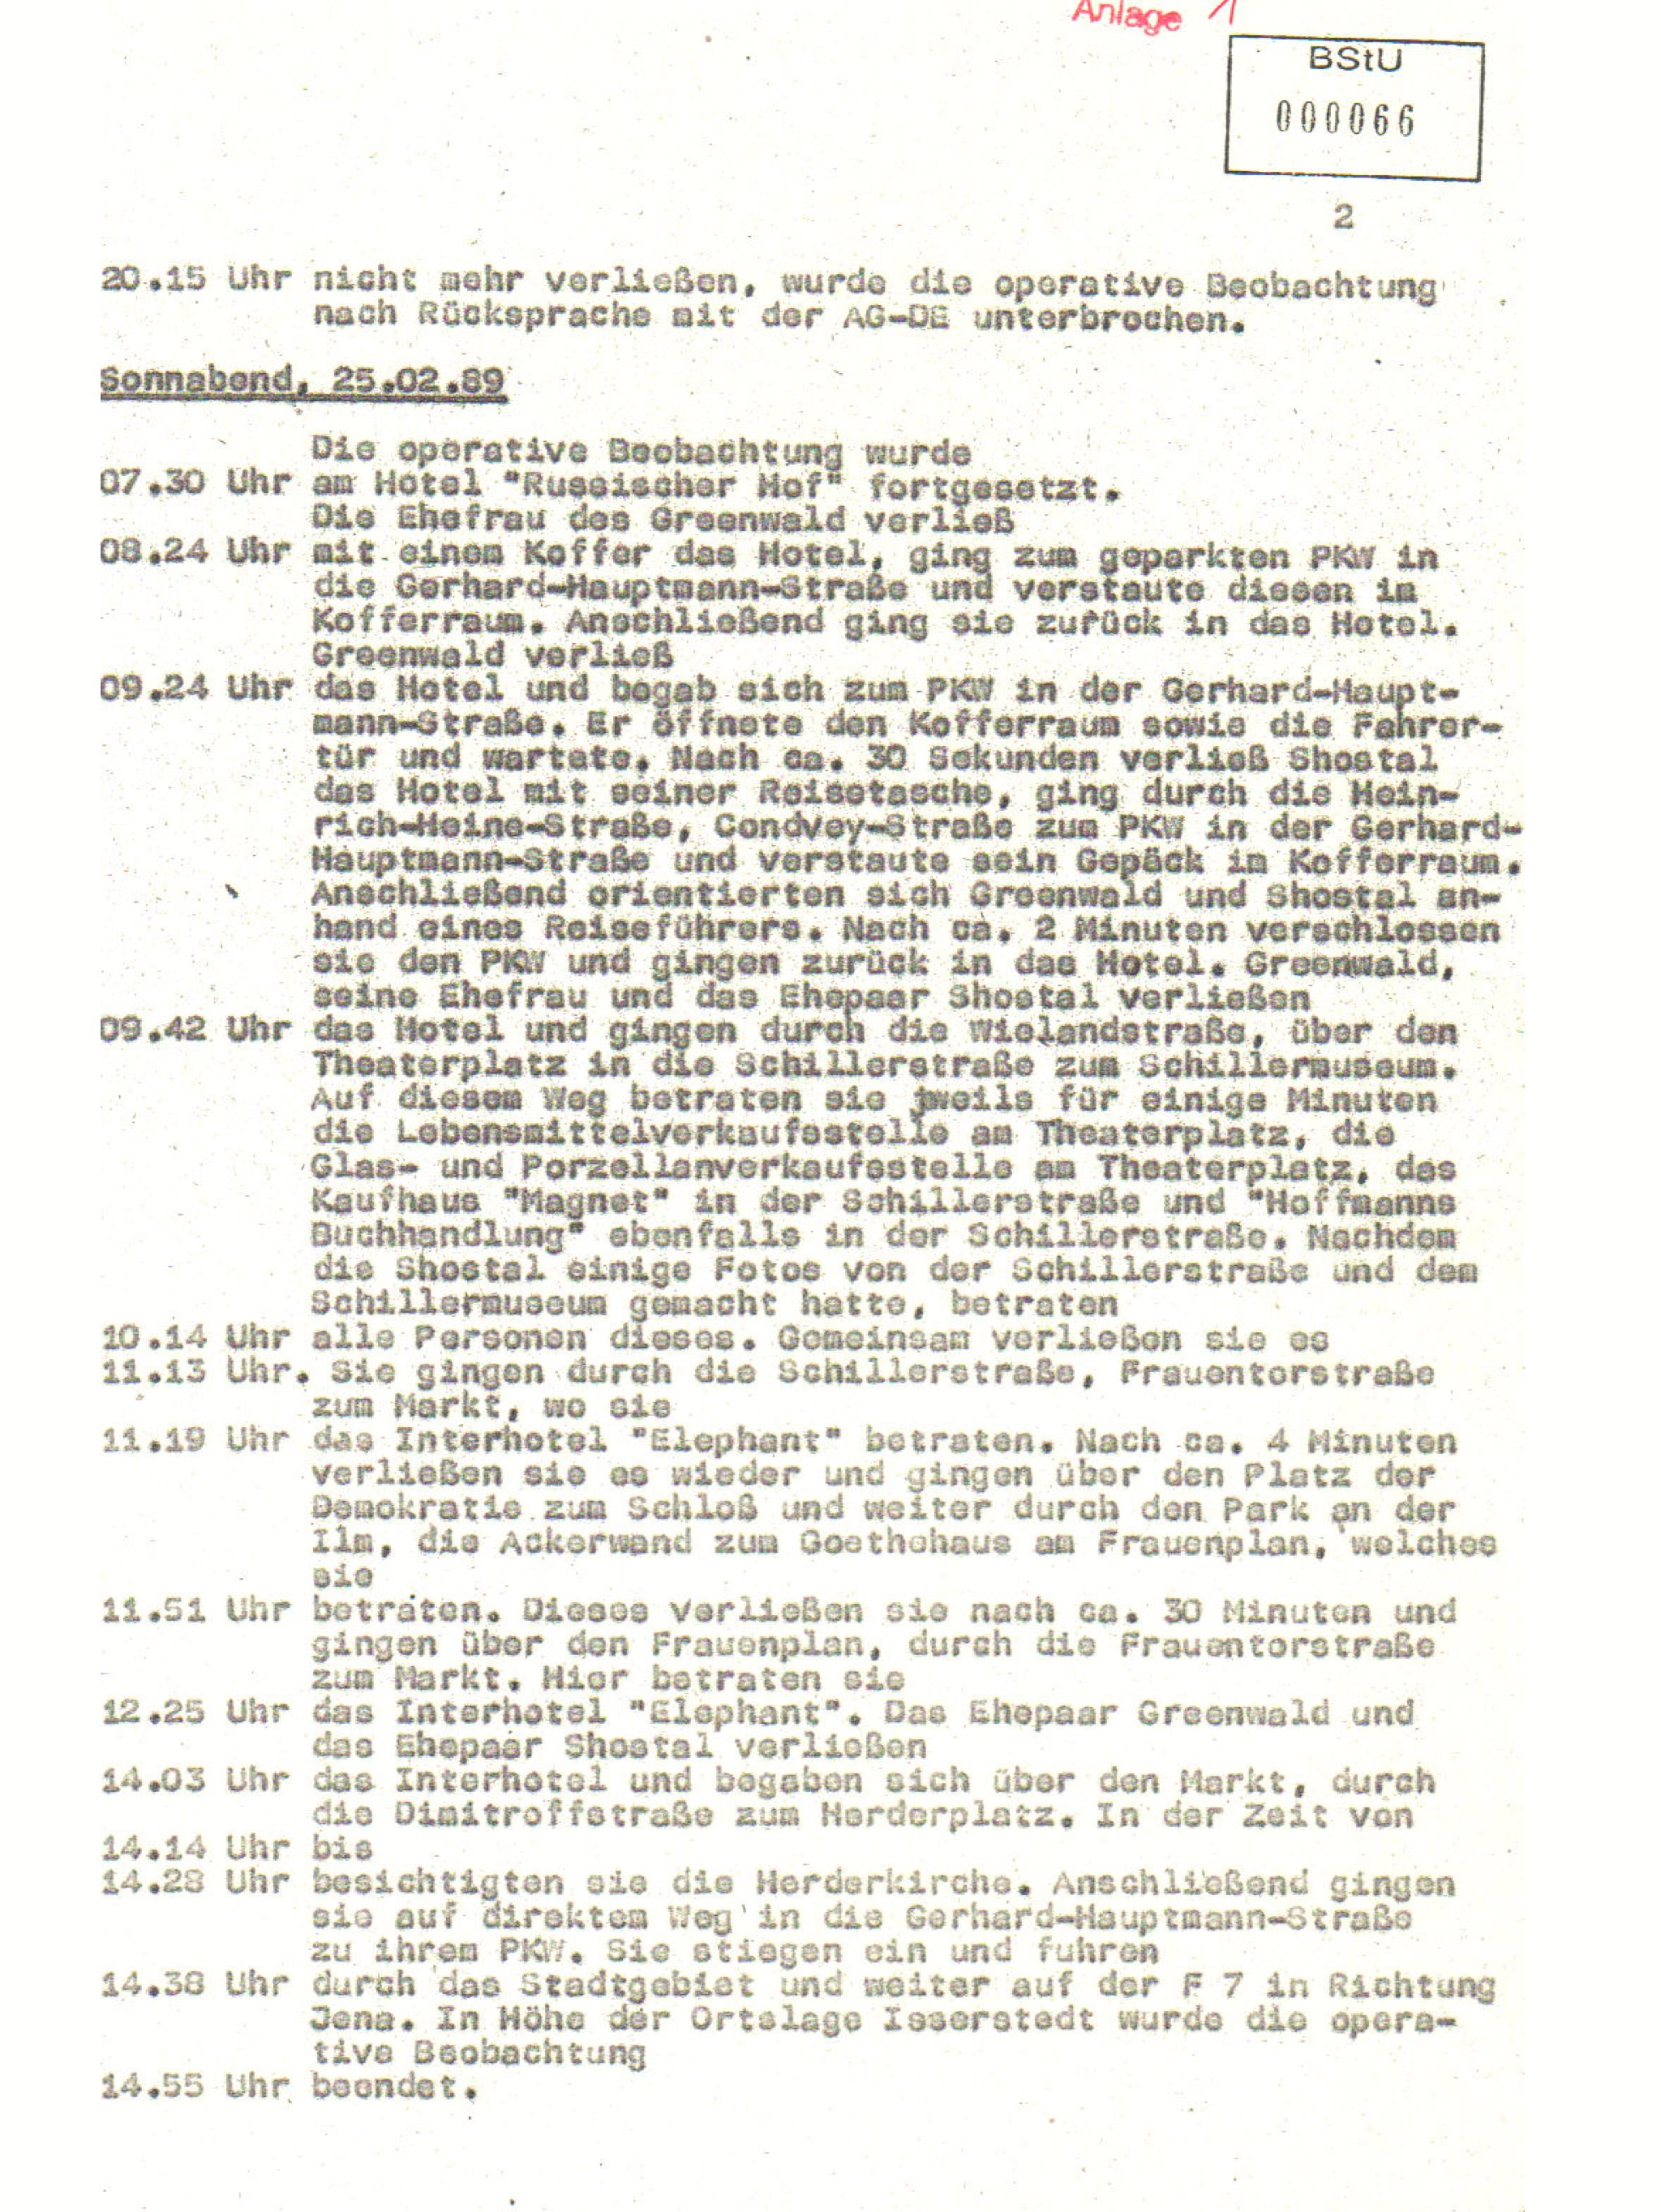 The words reproduced in the image here are from the surveillance file on U.S. diplomat G. Jonathan Greenwald, East Berlin, compiled by the Stasi, or East German secret police.